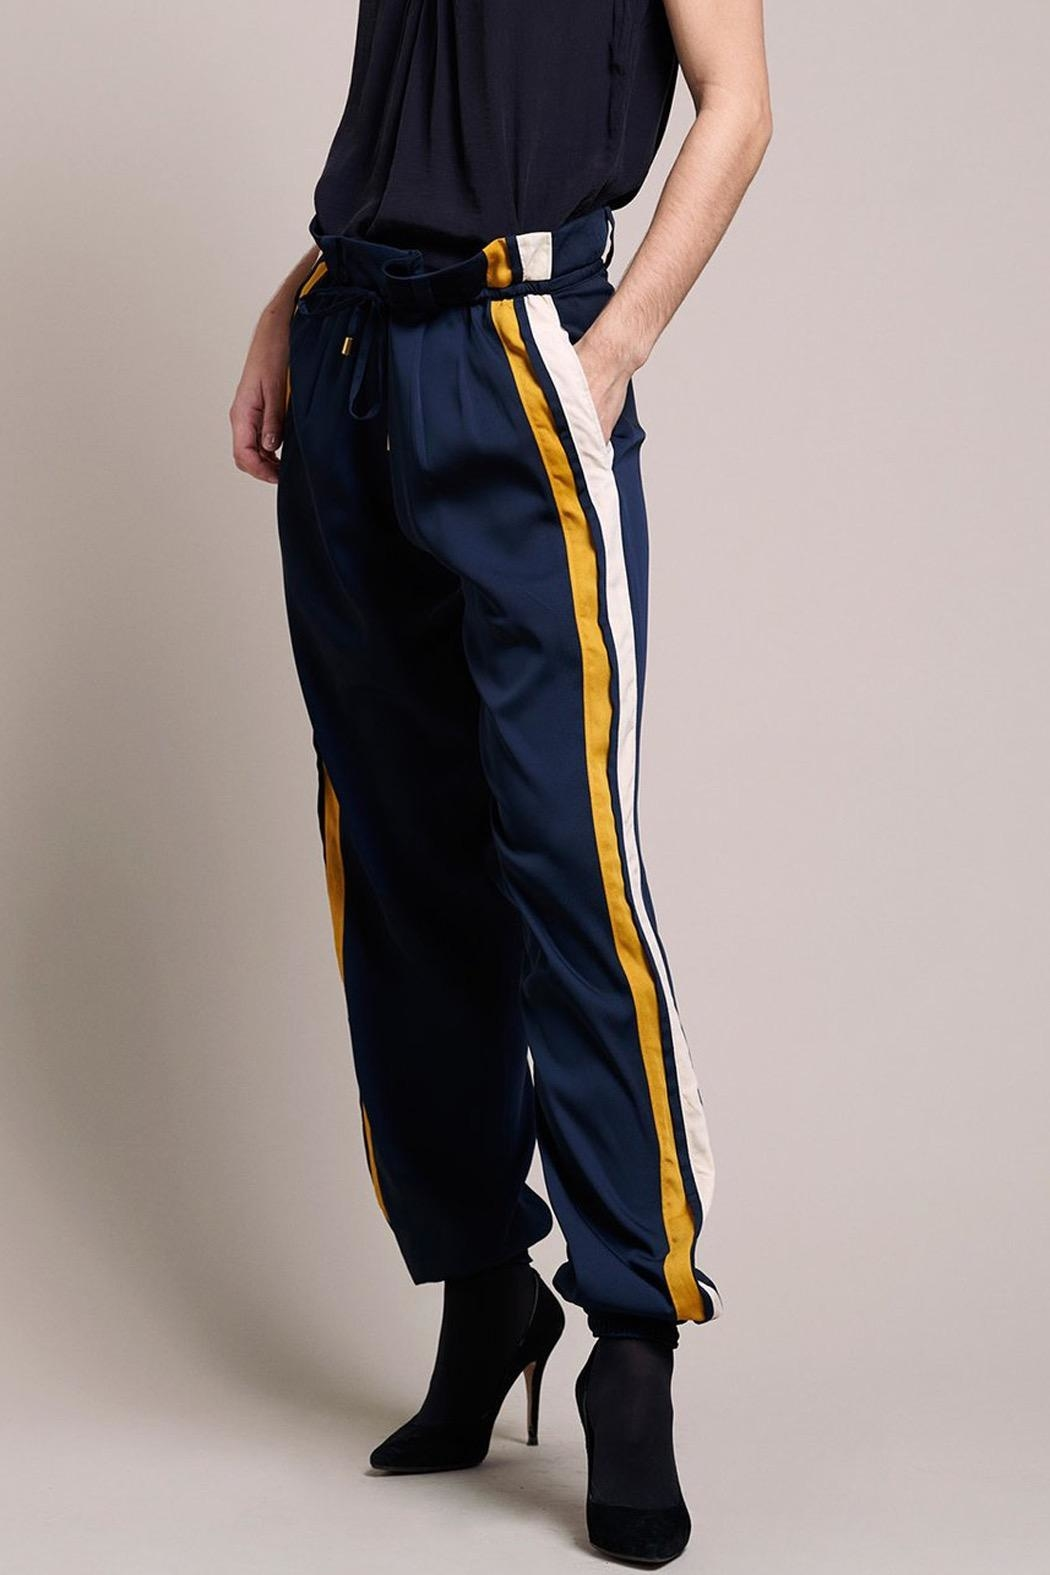 LOLLYS LAUNDRY Cool, Loosefitted Pants - Front Full Image